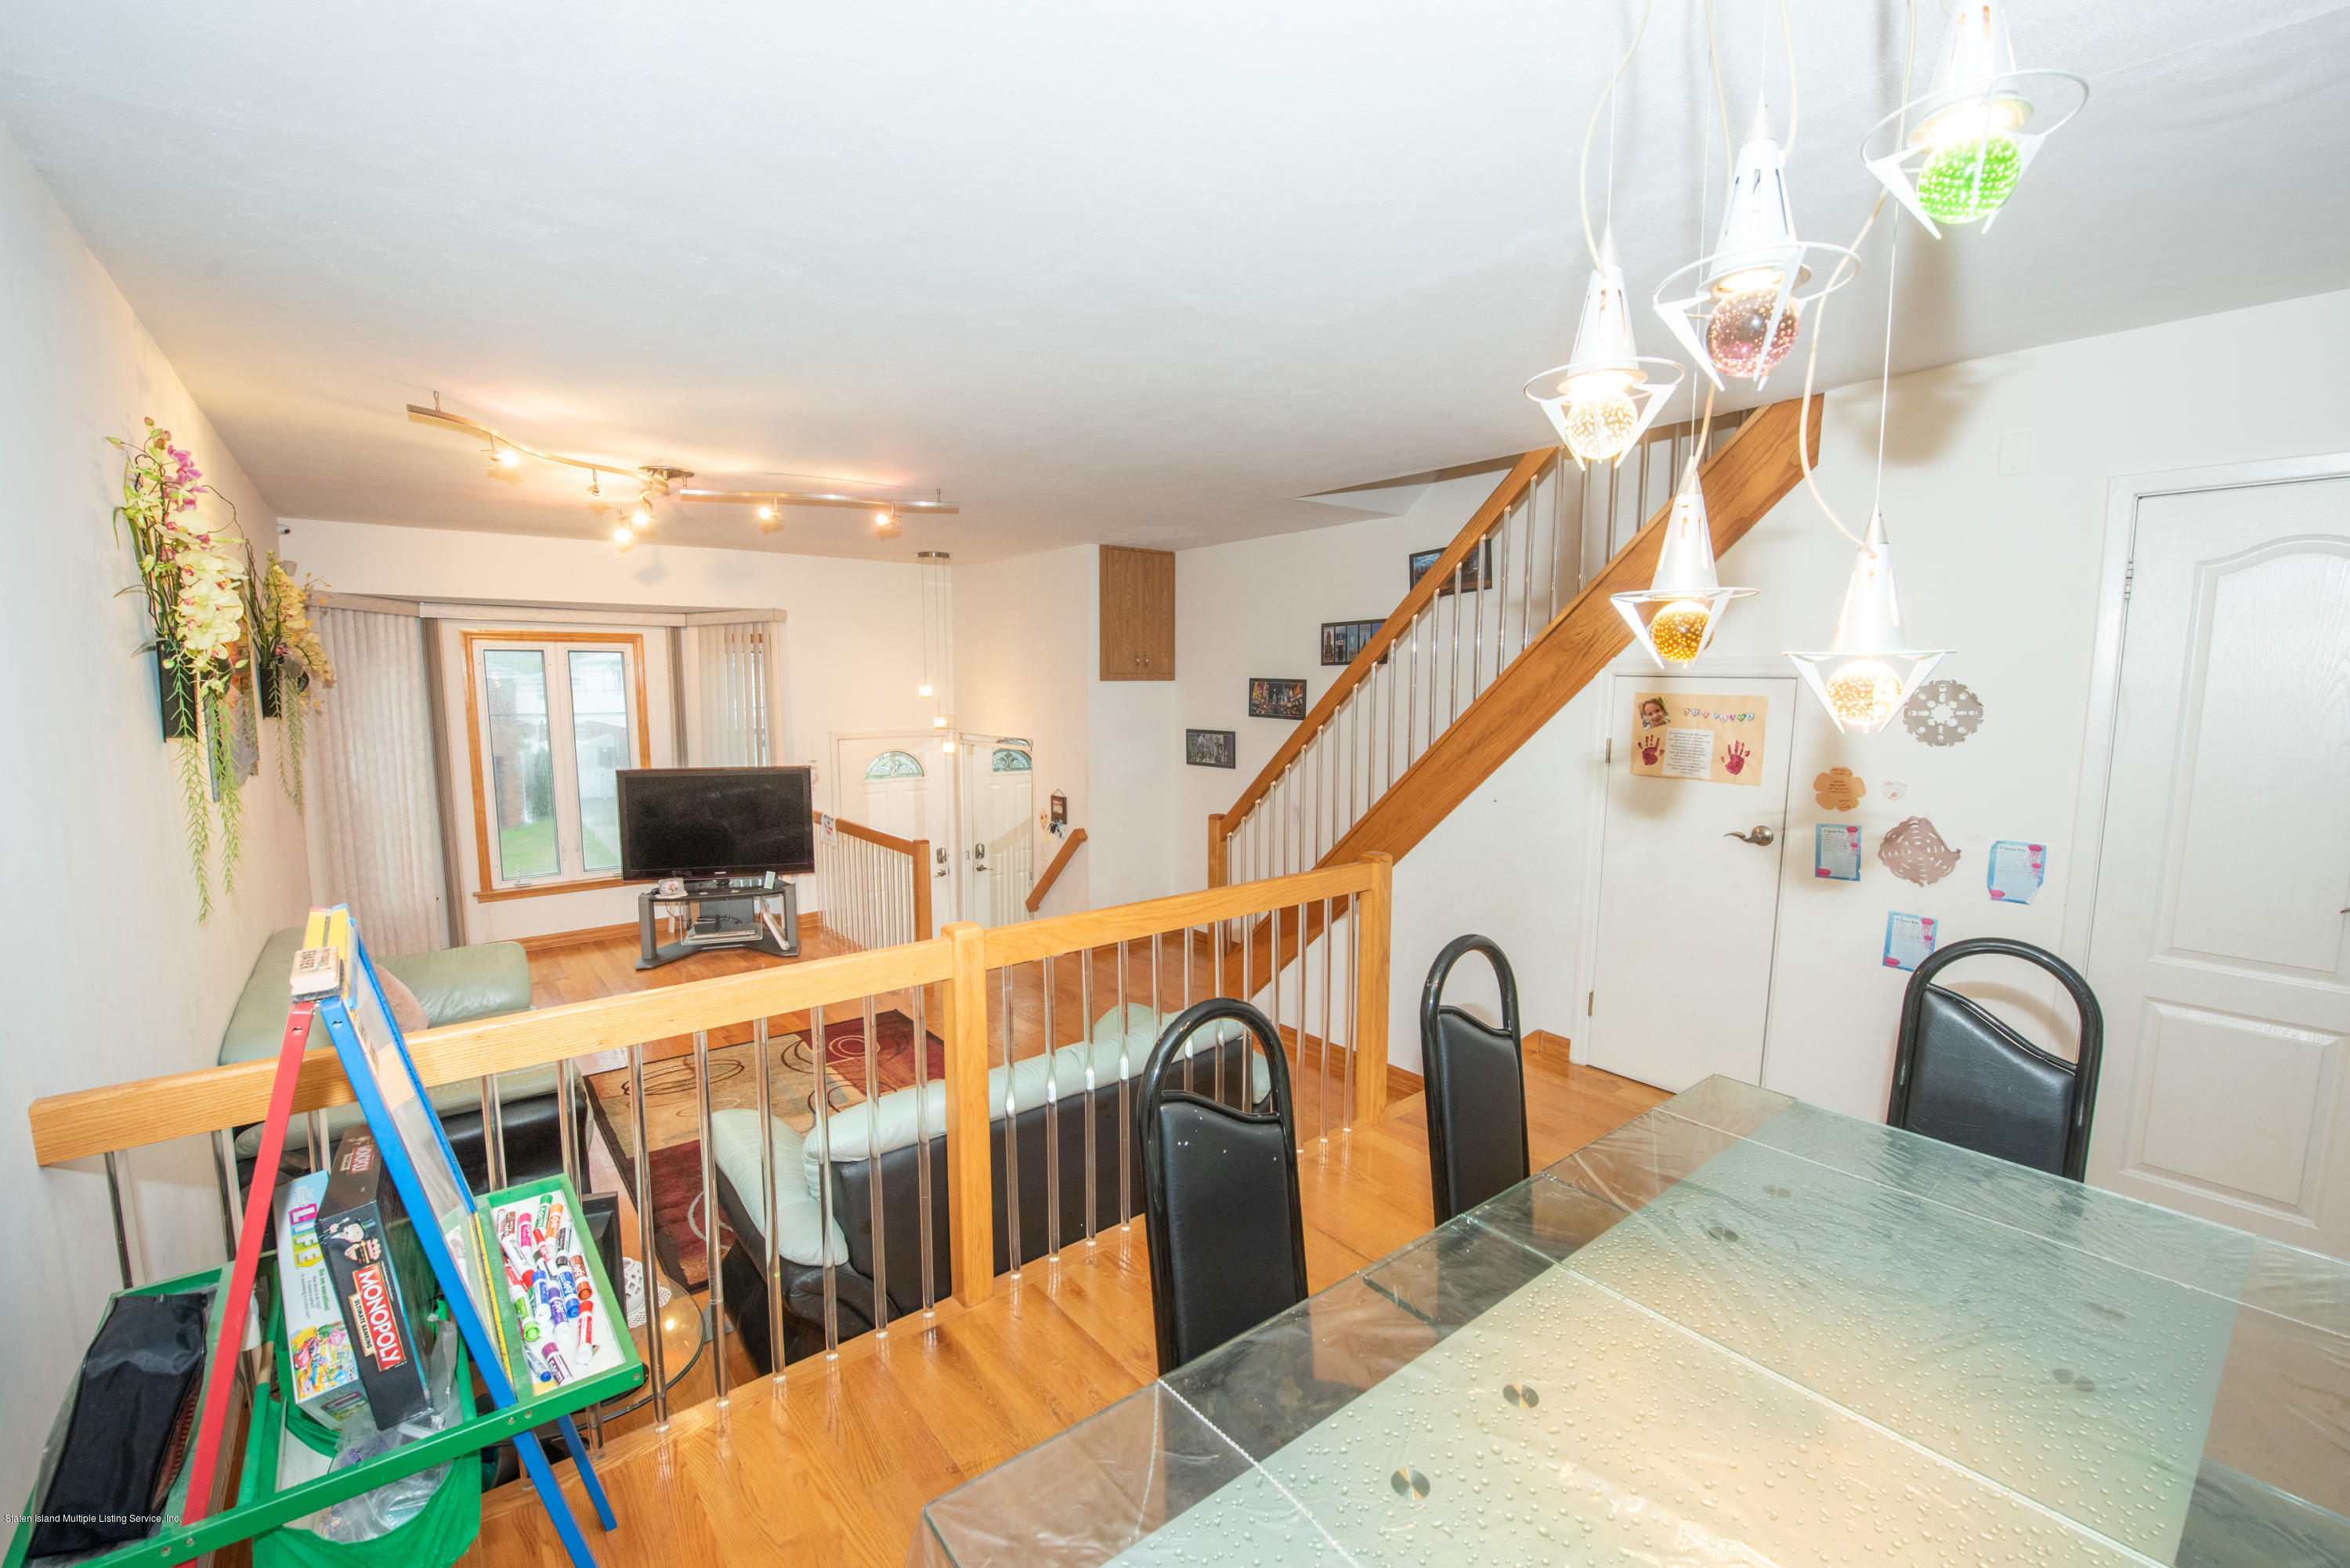 Single Family - Semi-Attached 76 Mcveigh Avenue  Staten Island, NY 10314, MLS-1133370-7